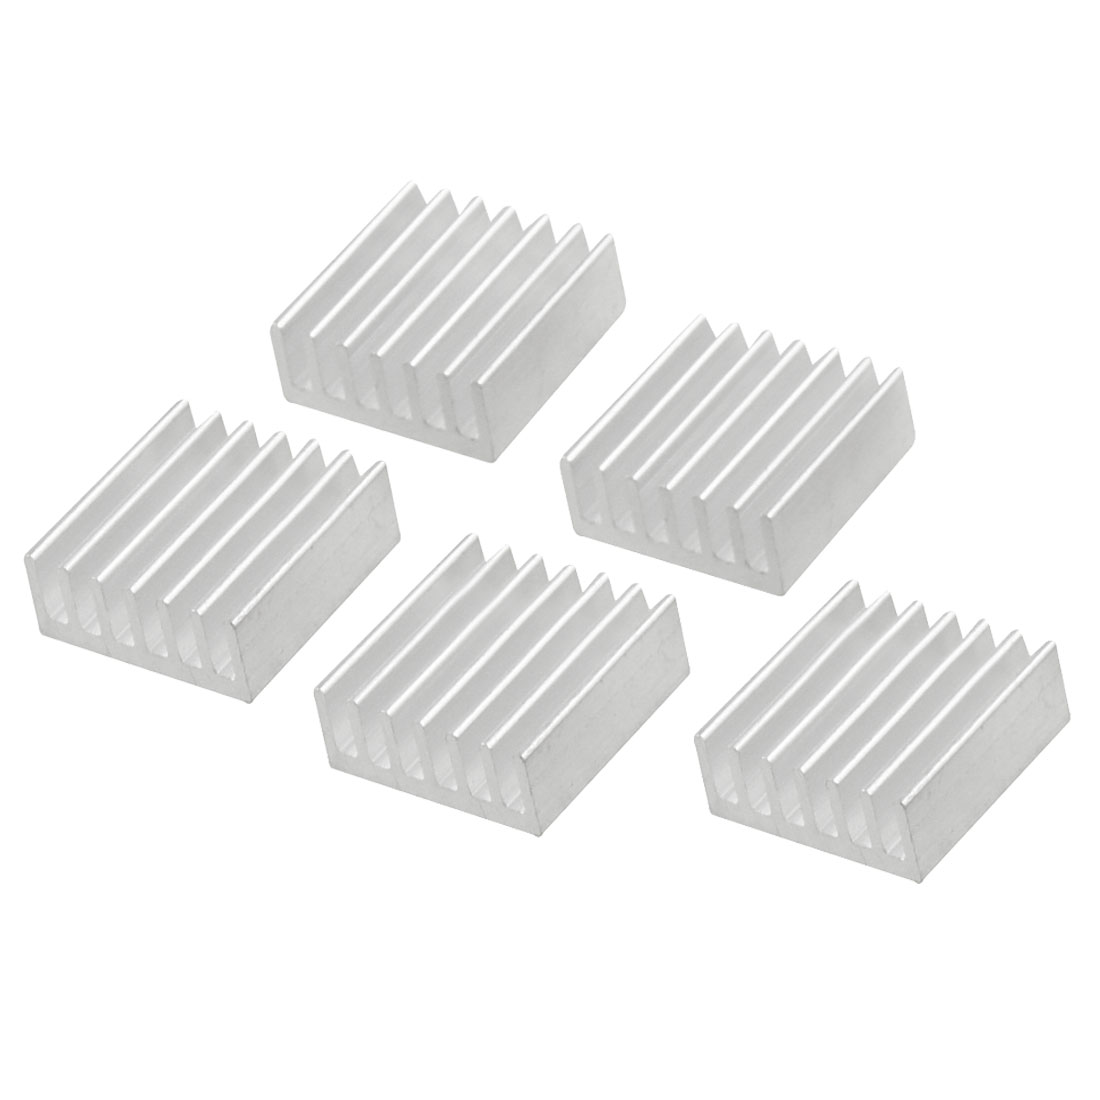 5 Pcs 15x15x6mm Aluminium Heatsink Heat Transfer Cooling Fin